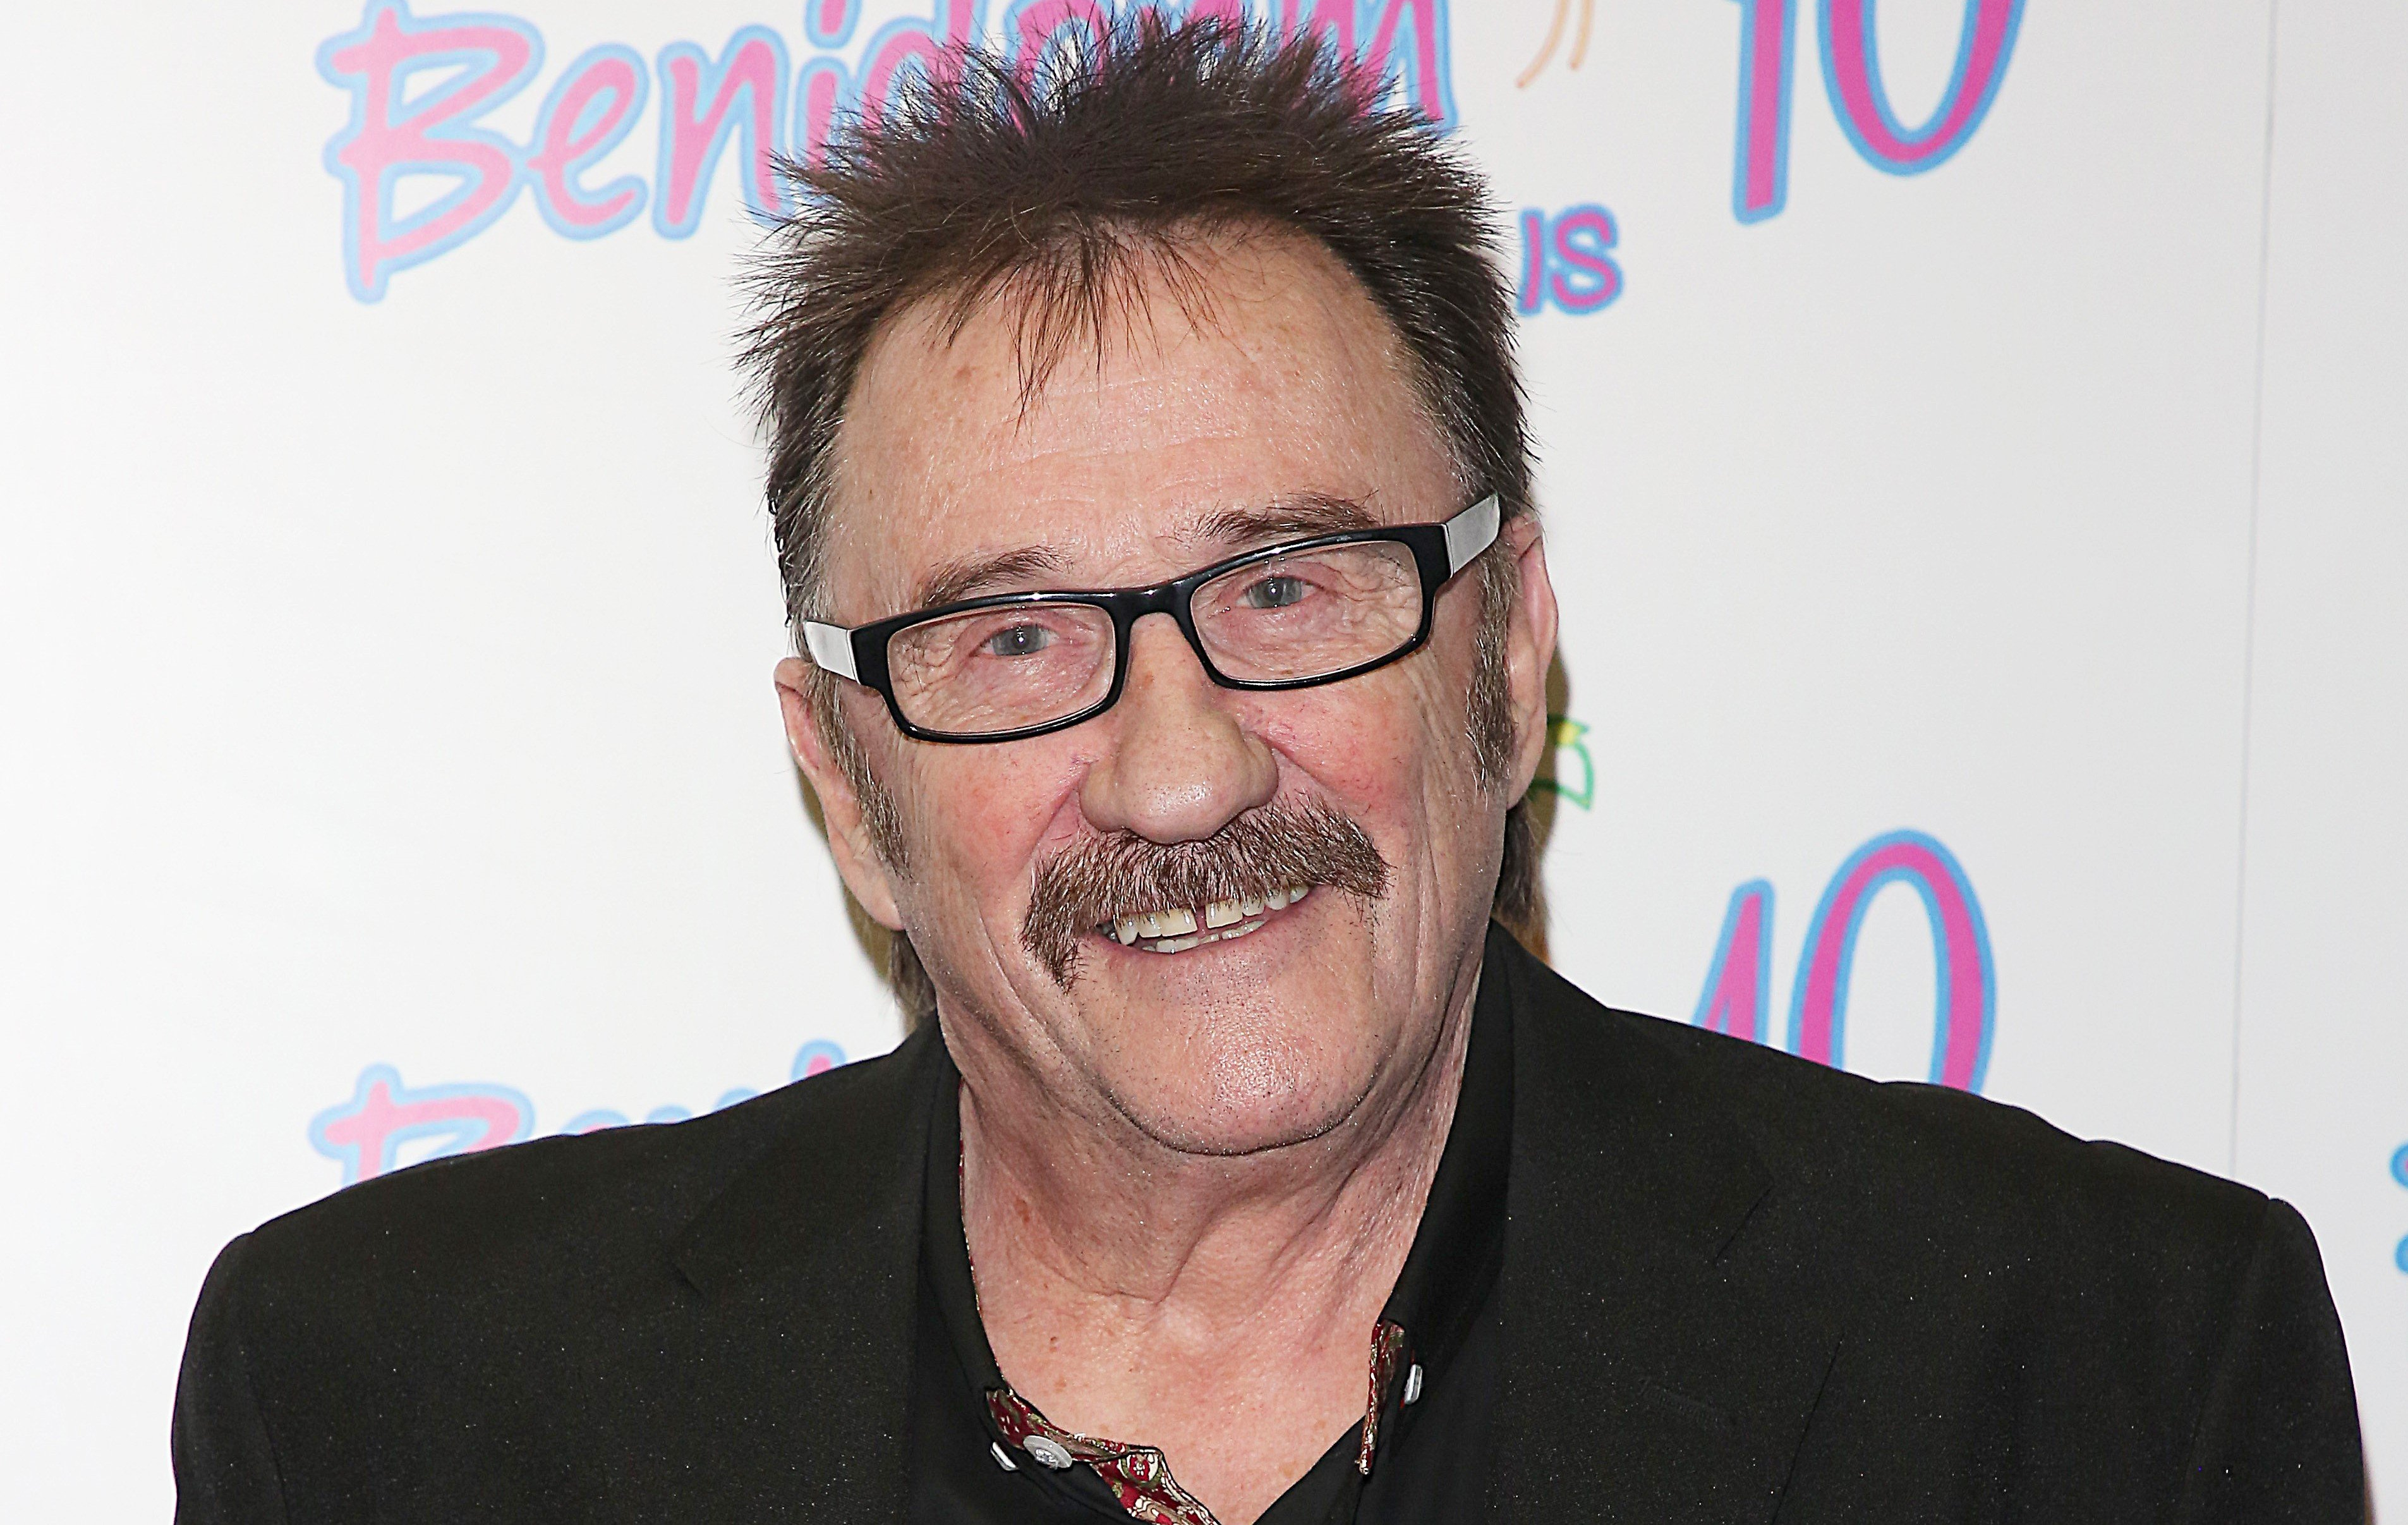 Paul Chuckle shares holiday pictures with EastEnders star Adam Woodyatt